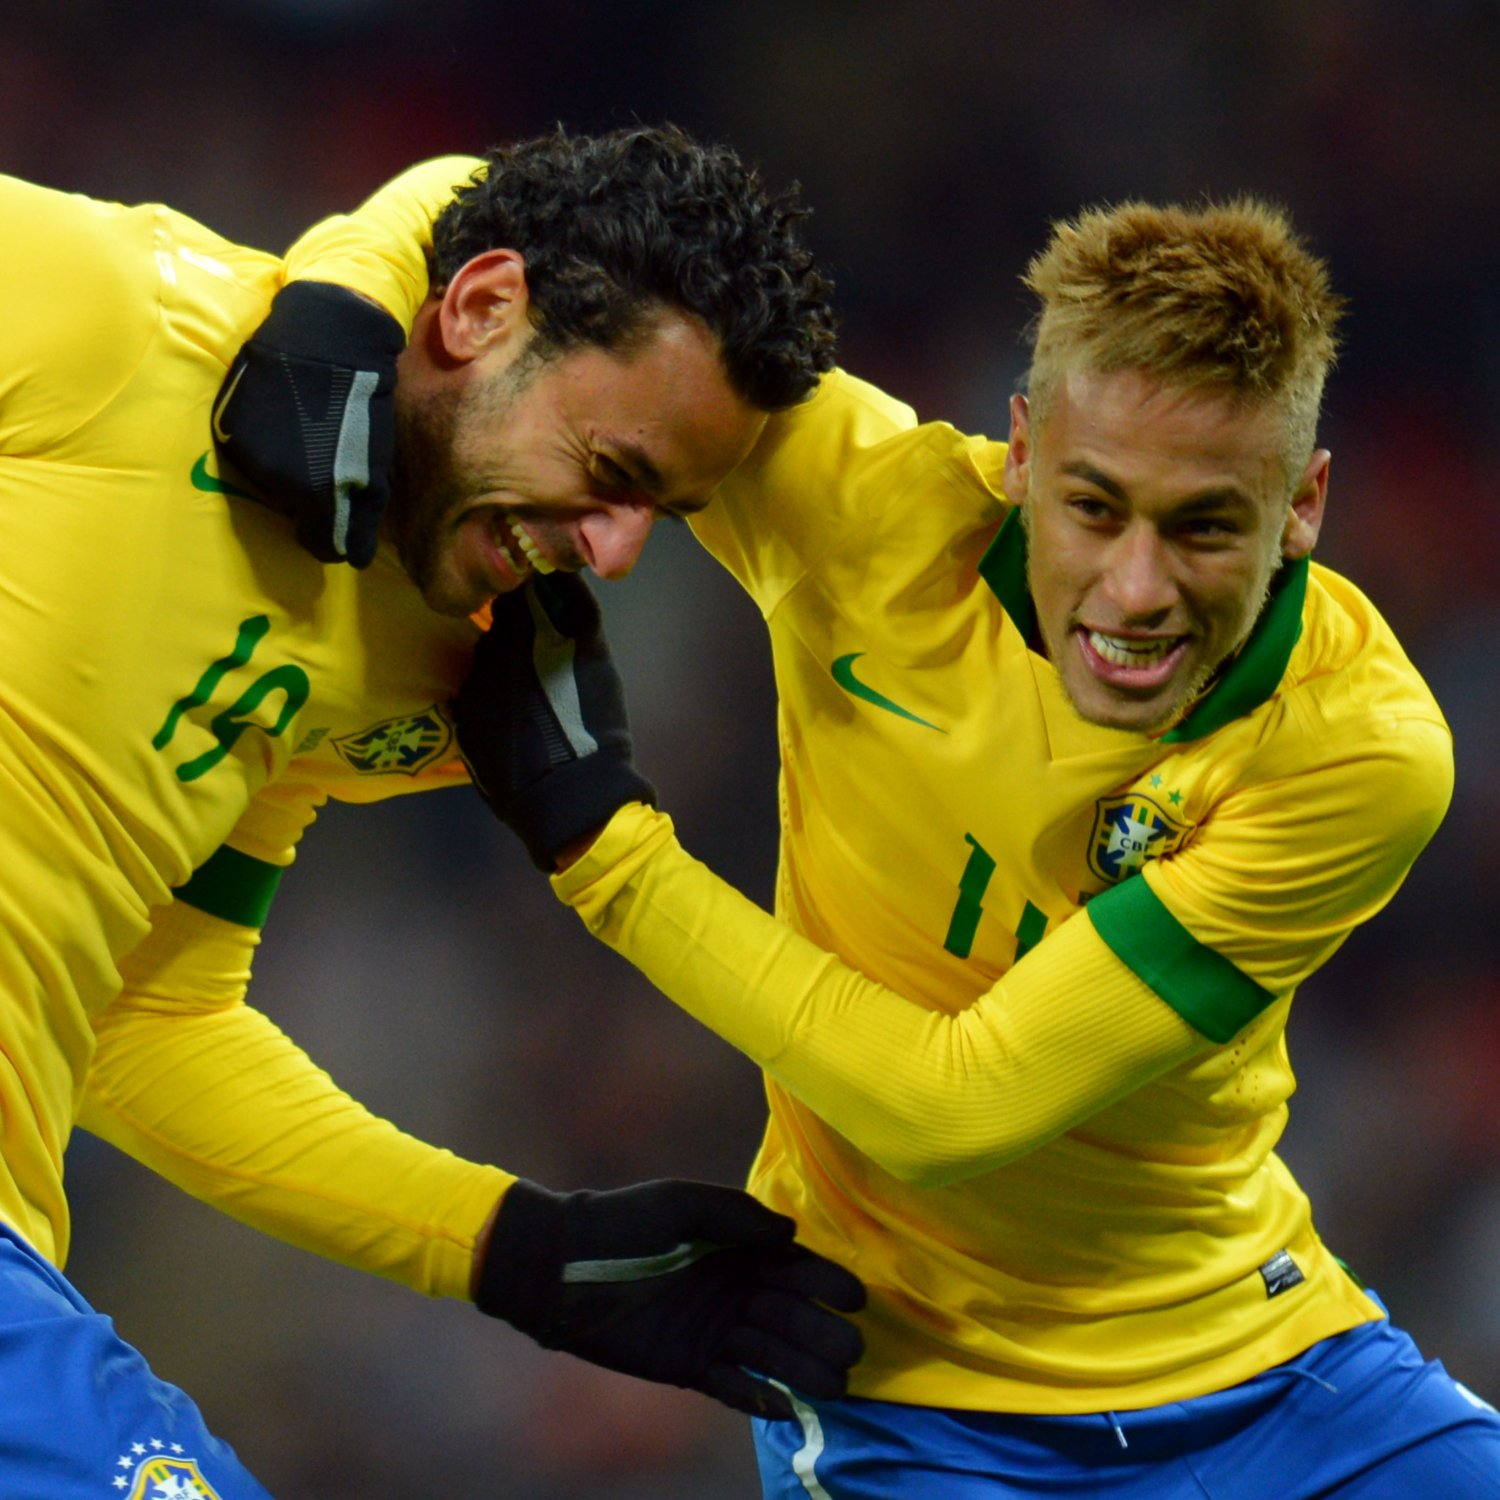 Lucas Moura Neymar: Why PSG's Lucas Moura Is Potentially Better Than Neymar